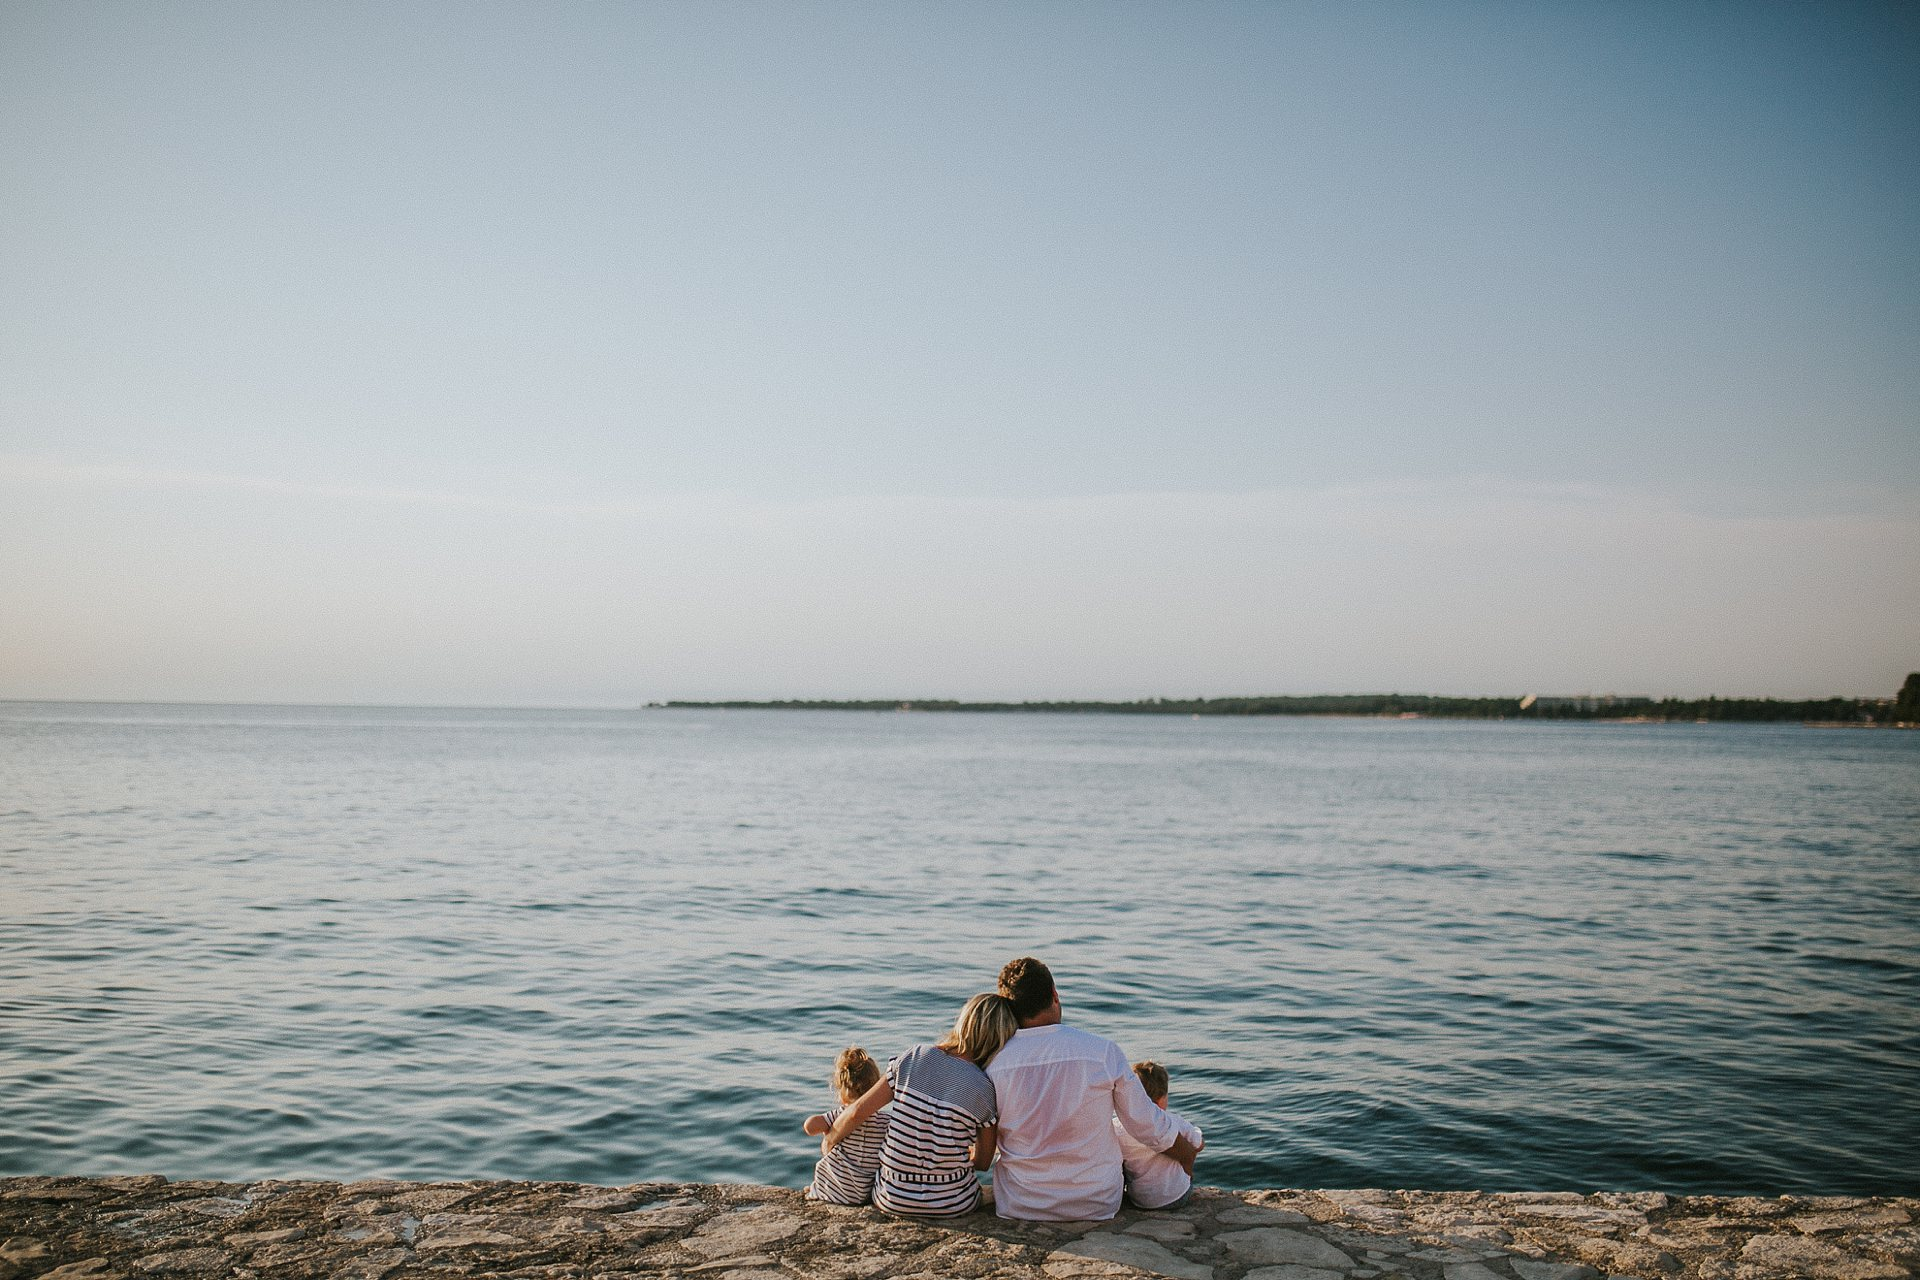 Dalibora_Bijelic_Croatia_Istria_family_vacation_photographer_0019.jpg